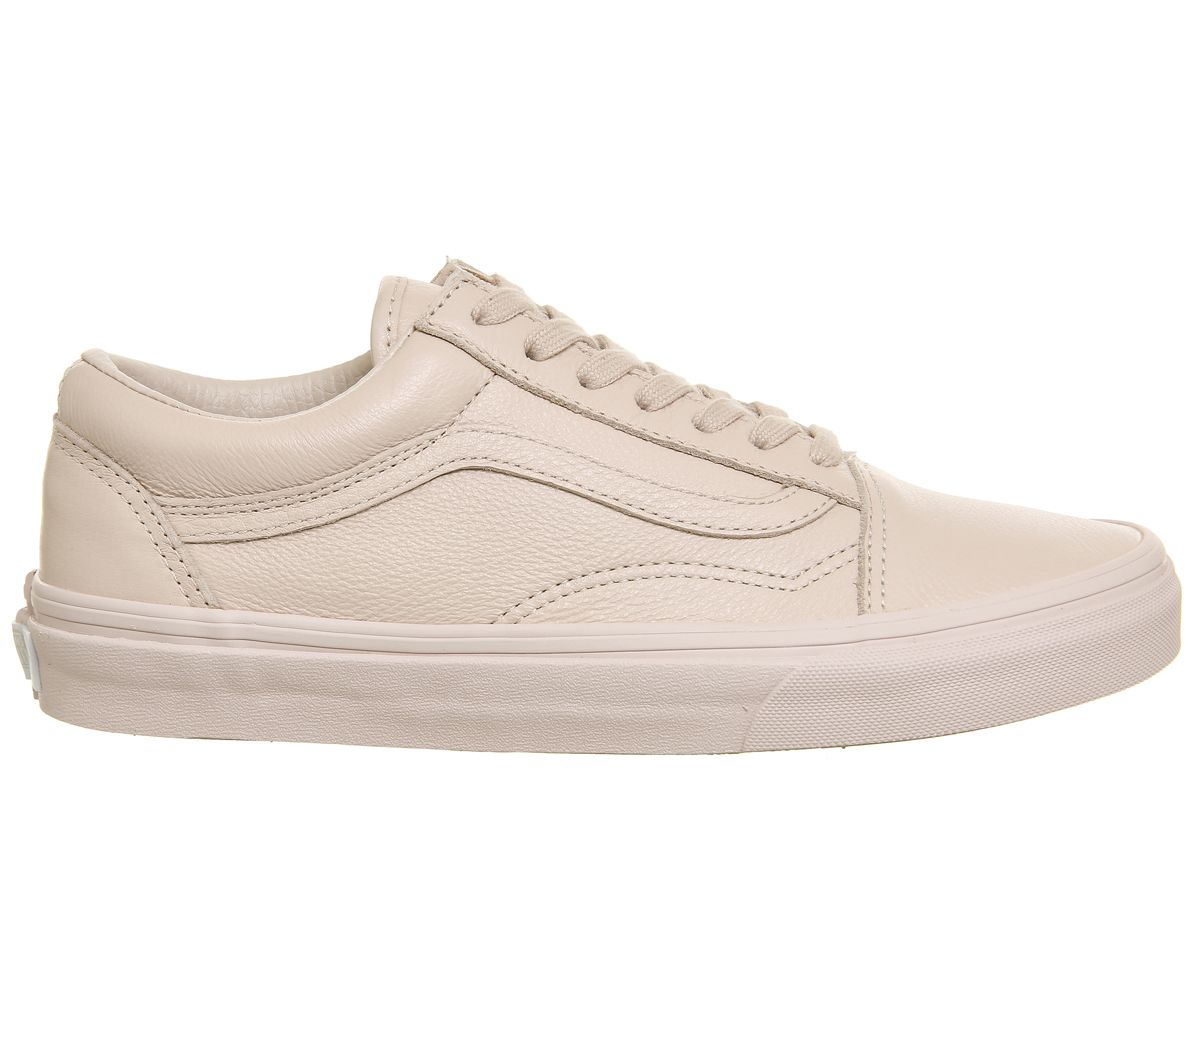 28f5cf2576e7 Vans Old Skool Trainers Sepia Rose Mono - Hers trainers